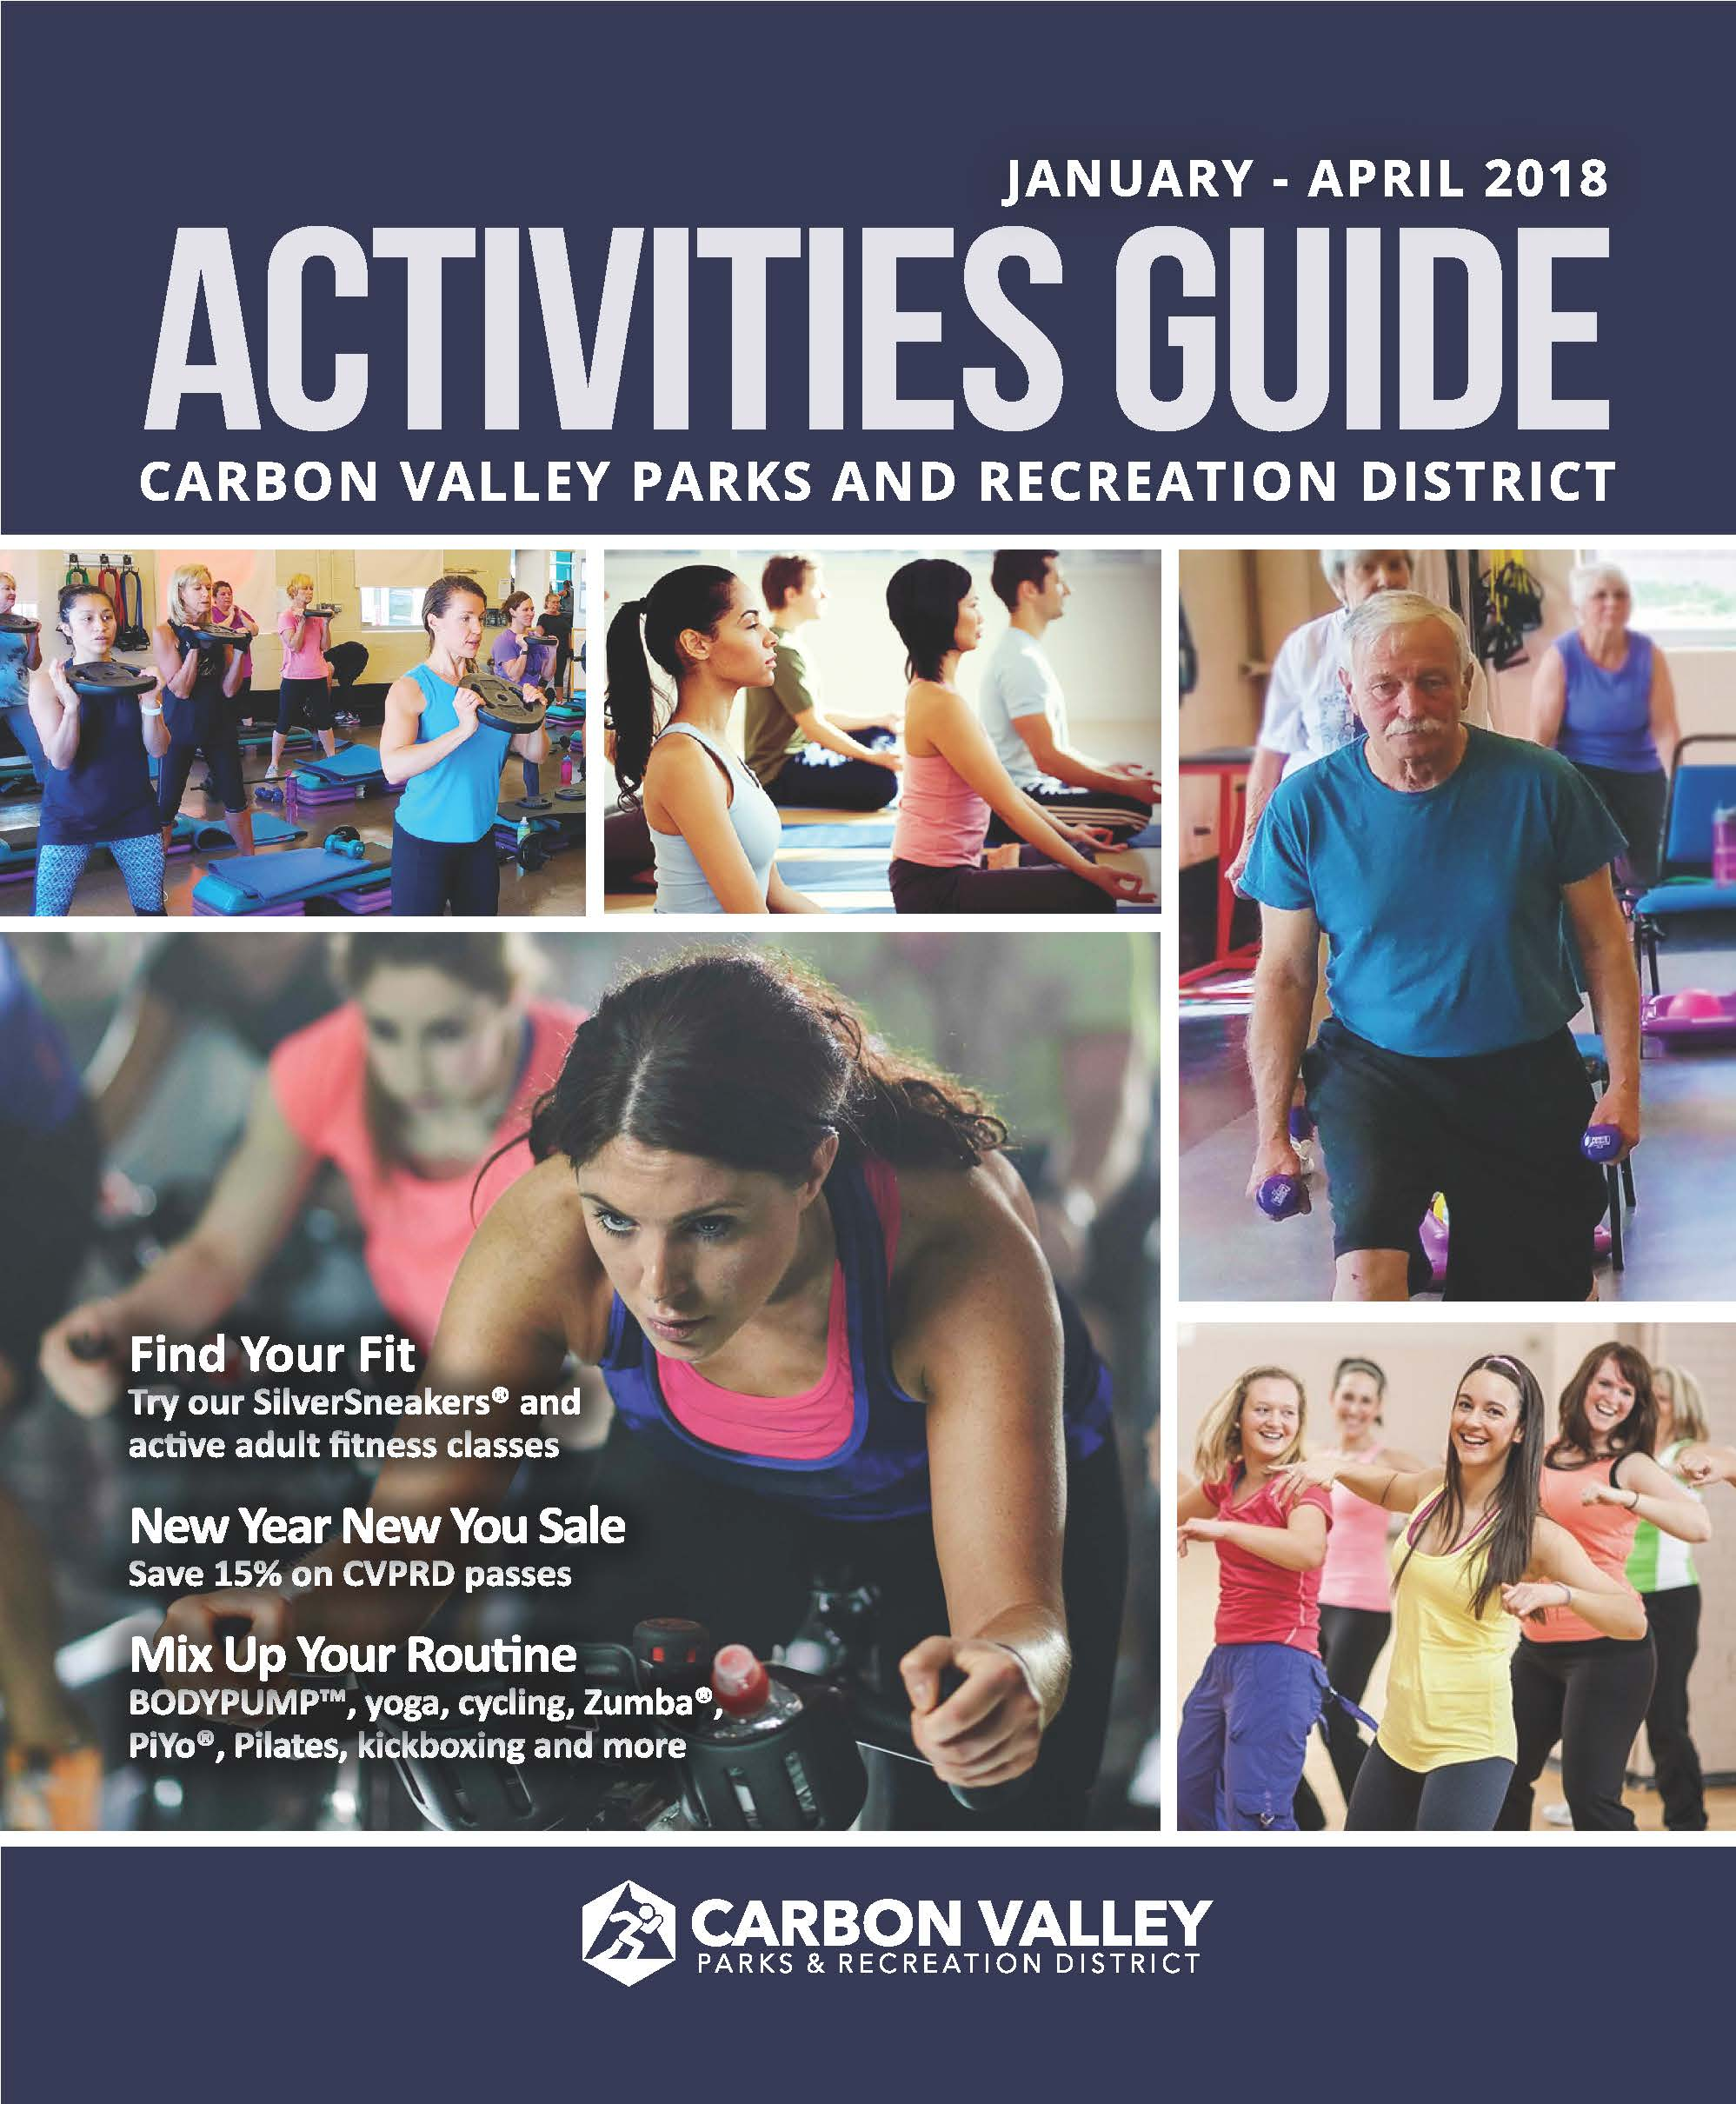 January to April 2018 Activity Guide